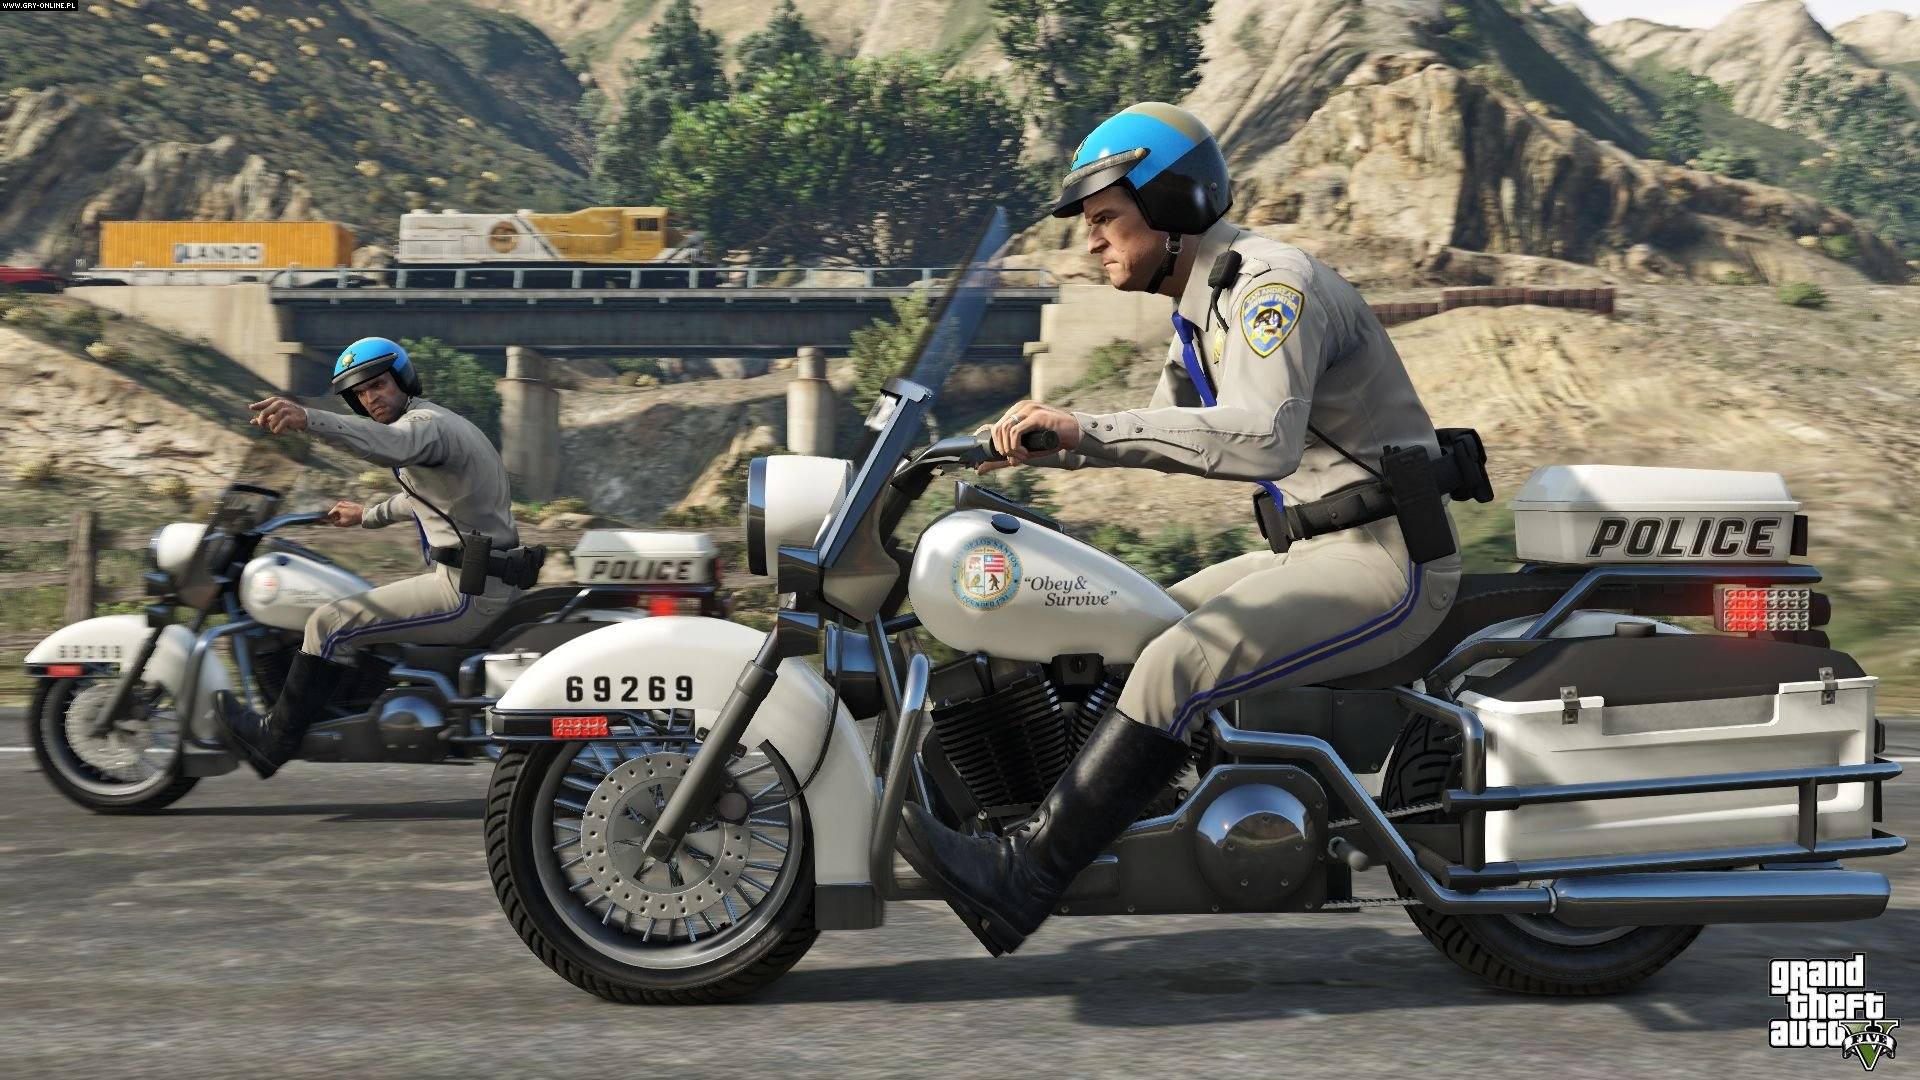 Grand Theft Auto V PC, PS4, XONE Gry Screen 118/396, Rockstar Games